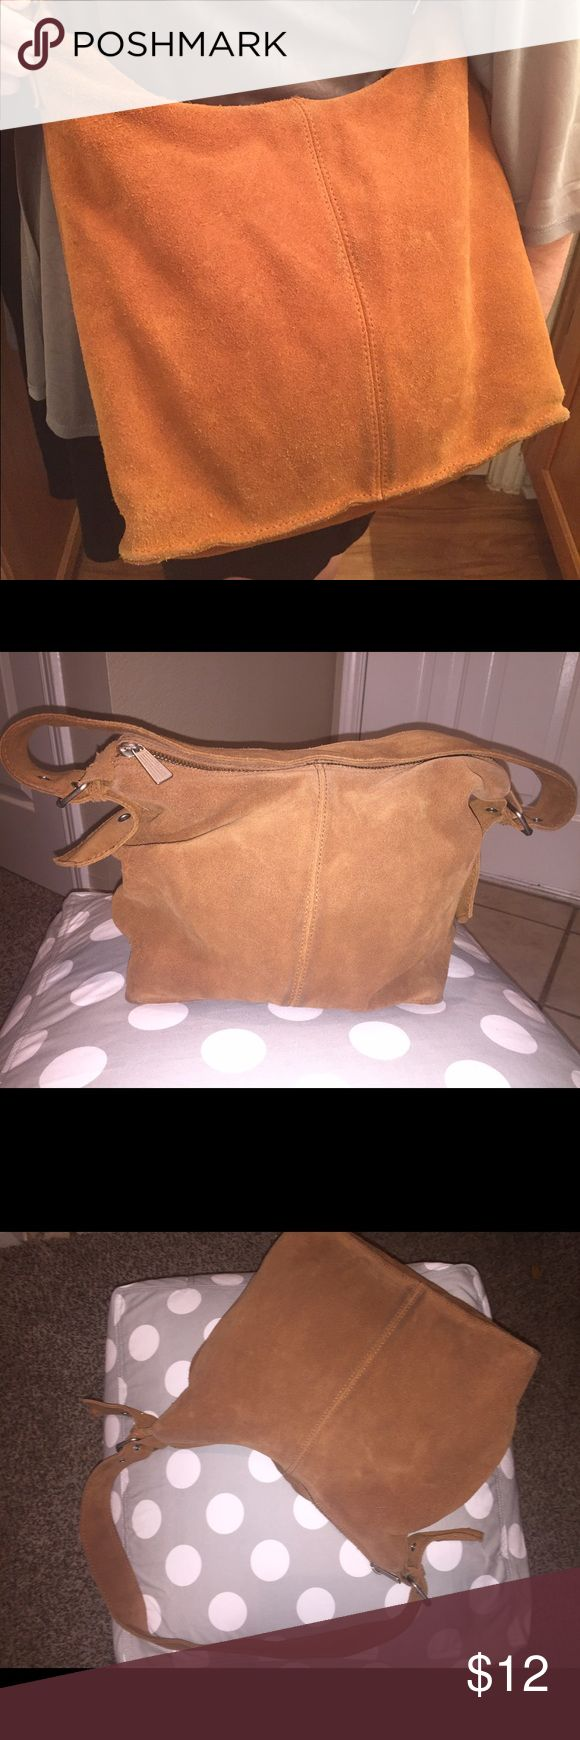 """Suede Gap Purse This bag screams """"Lets hit the town!"""" It features an adjustable strap, four inner pockets (1 zippered), and sturdy construction. The suede is soft and in good used condition. GAP Bags Shoulder Bags"""